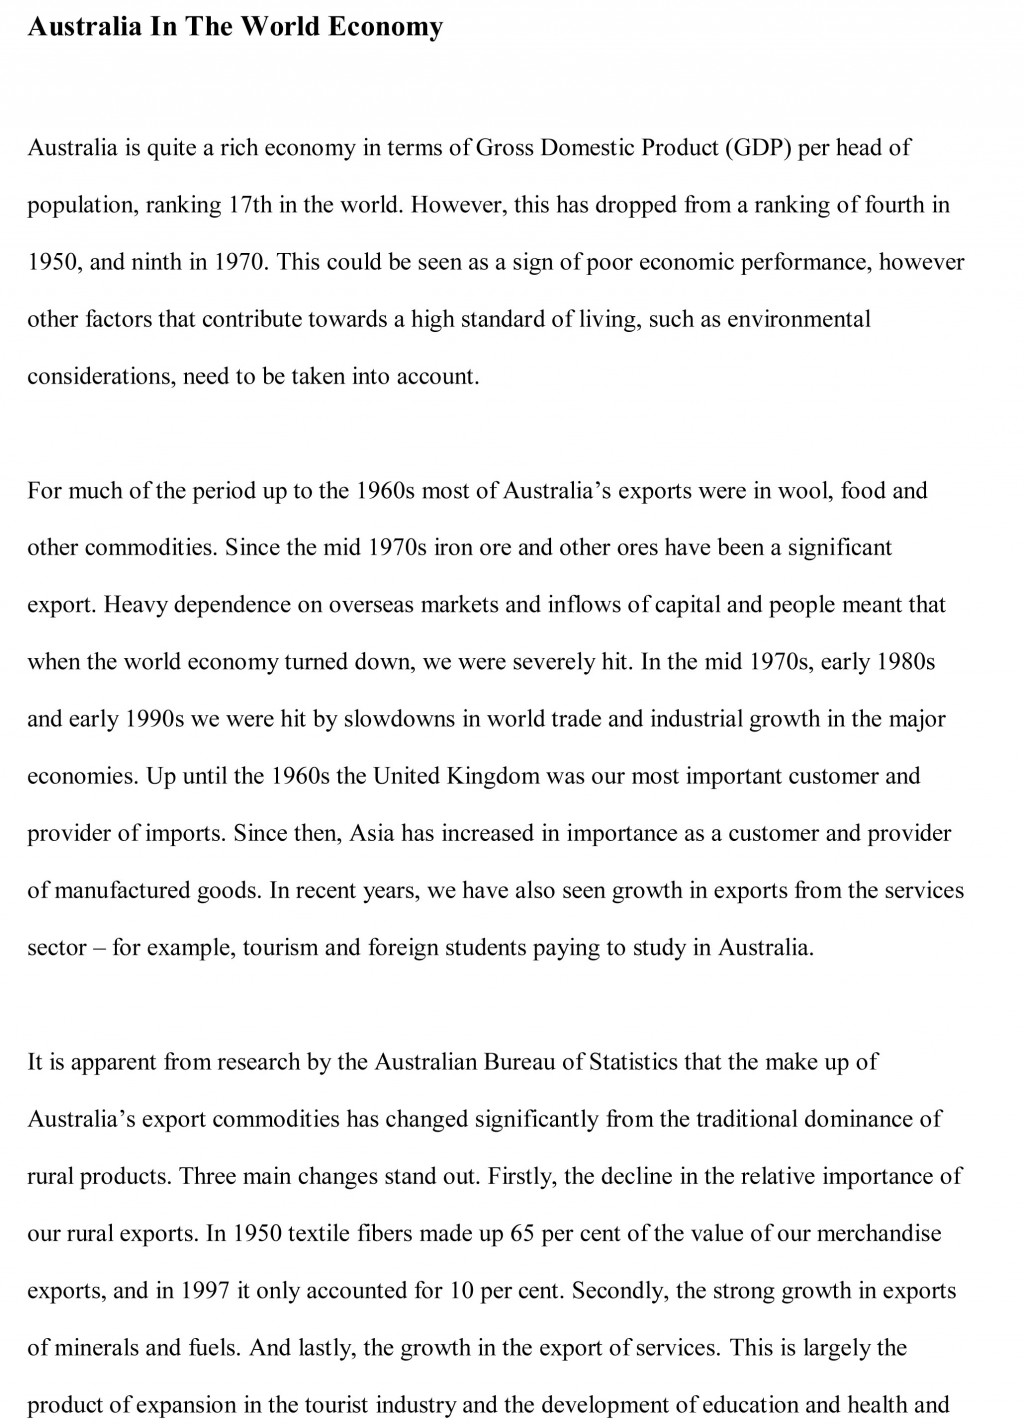 003 How Changed The World Essay Economics Free Sample Formidable 9 11 9/11 Did Today Large